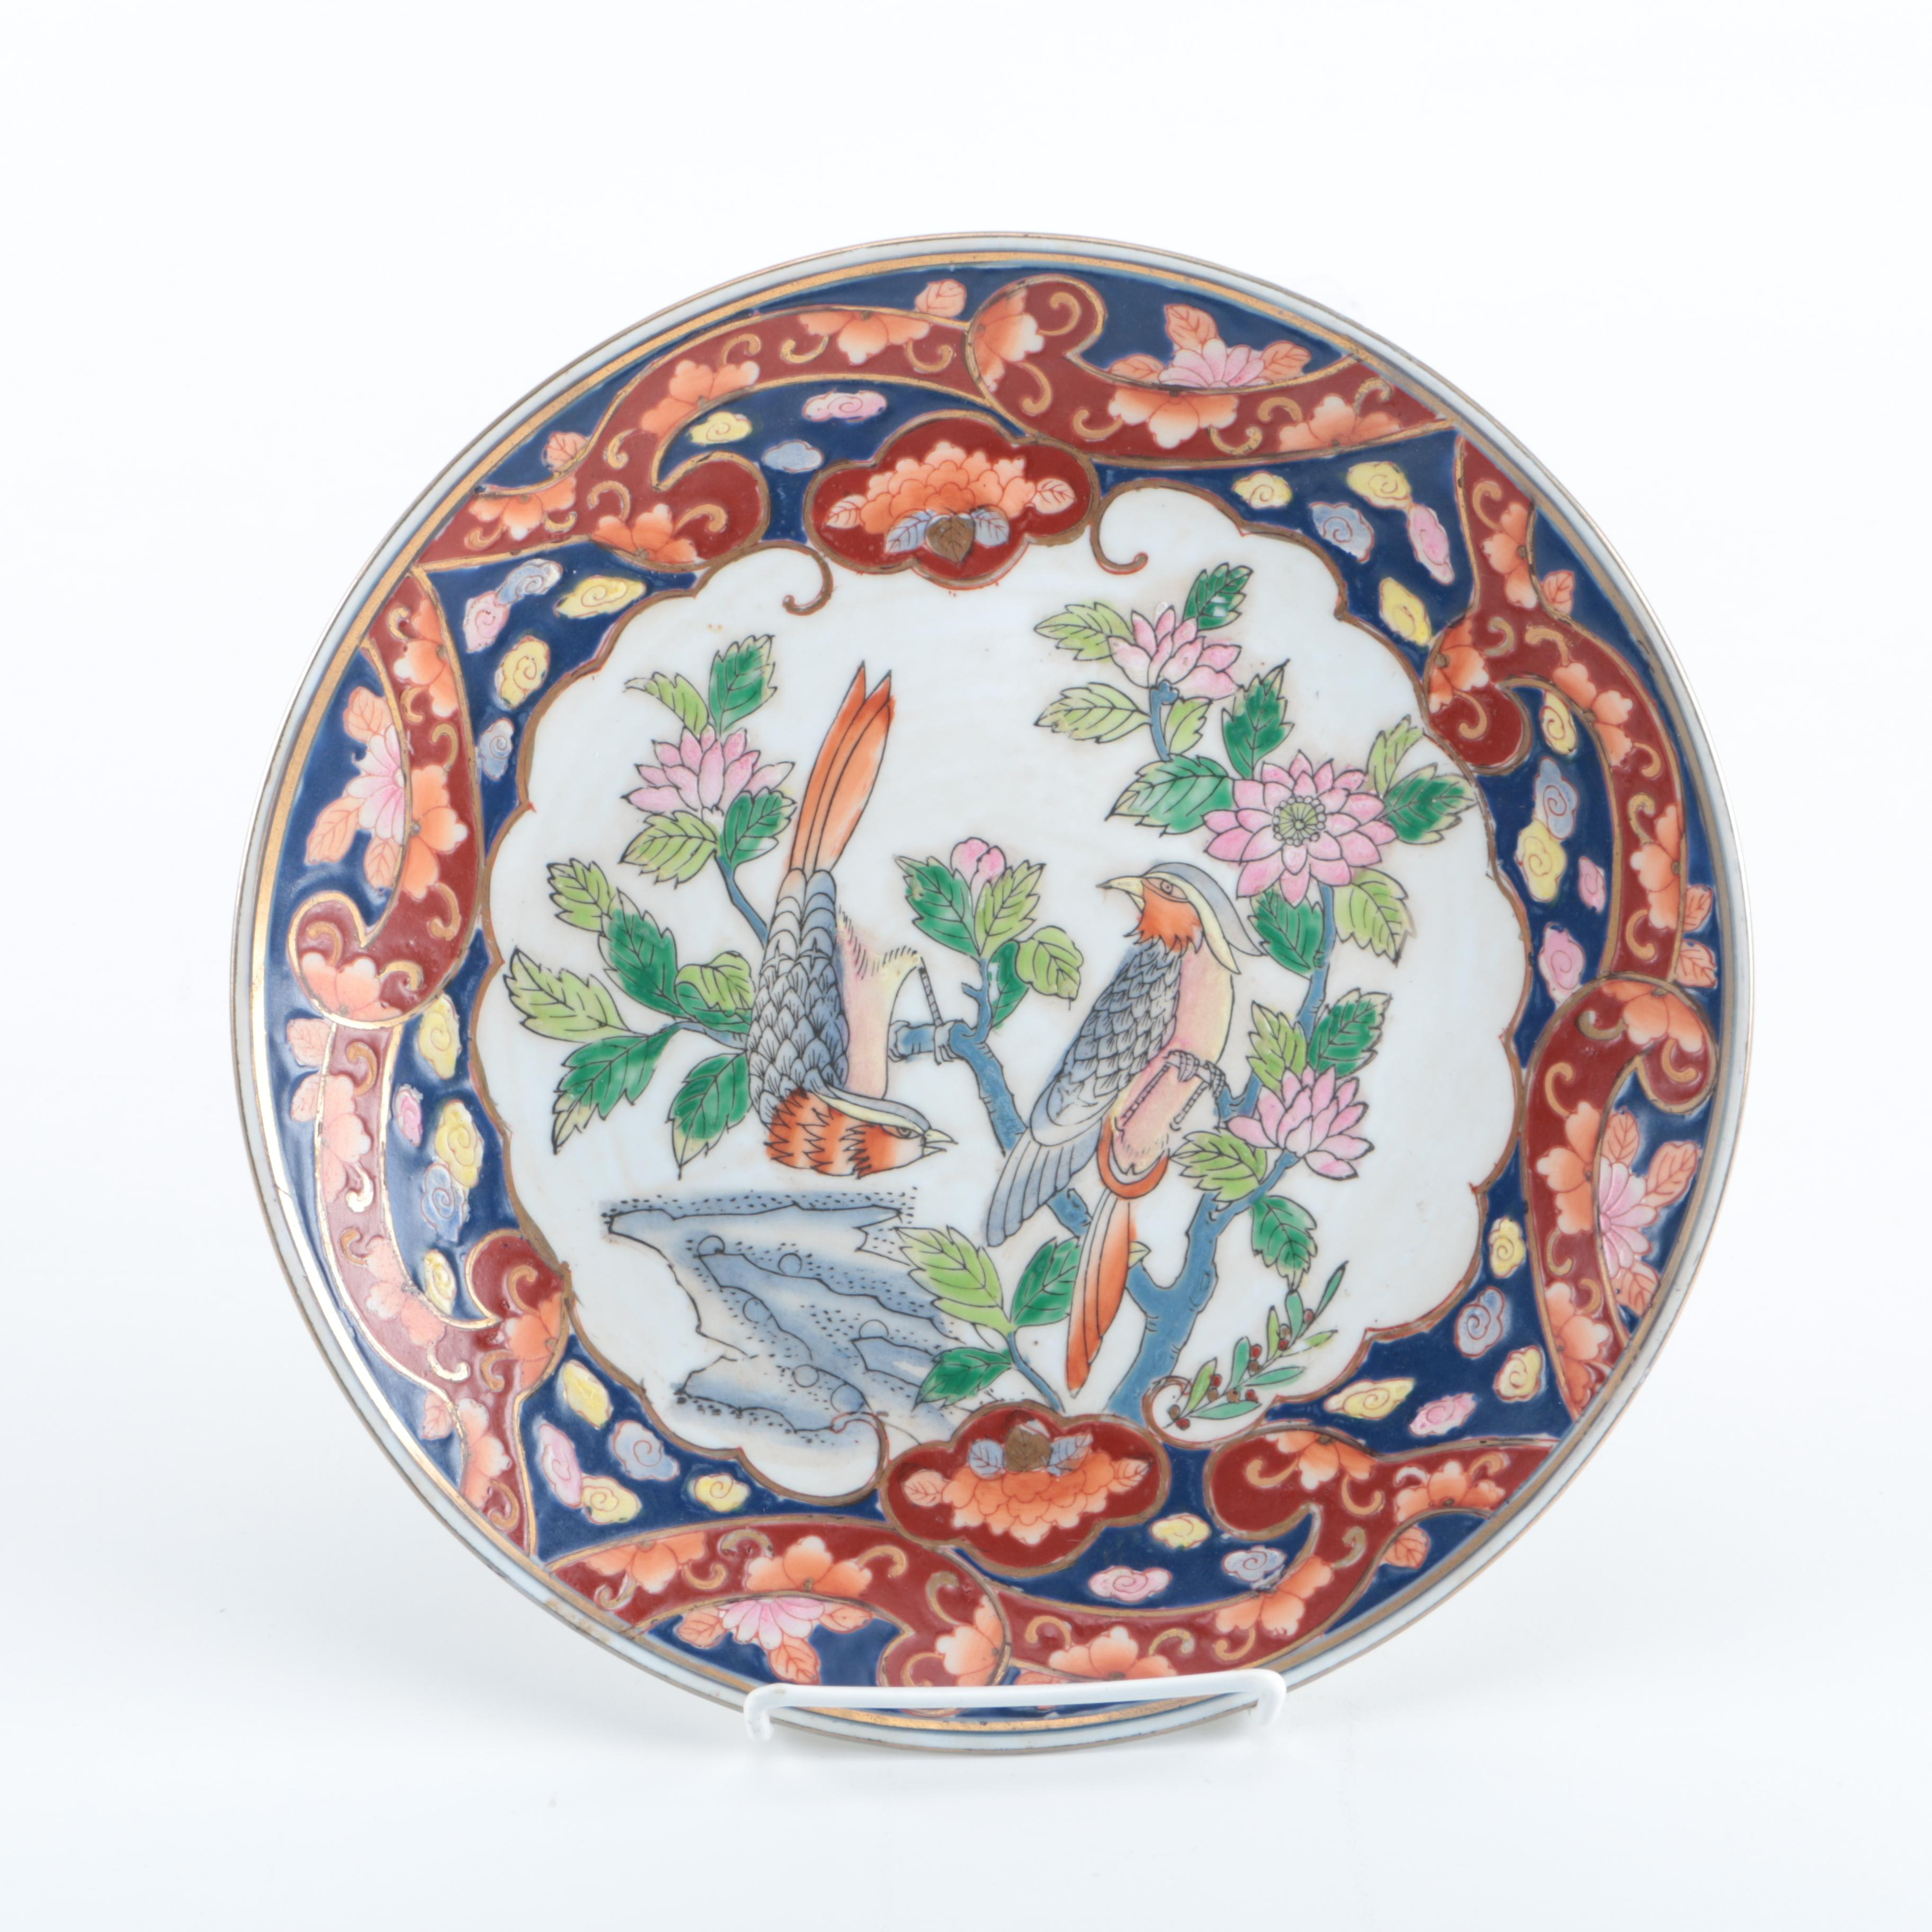 Oriental Themed Plate Decorated with Birds